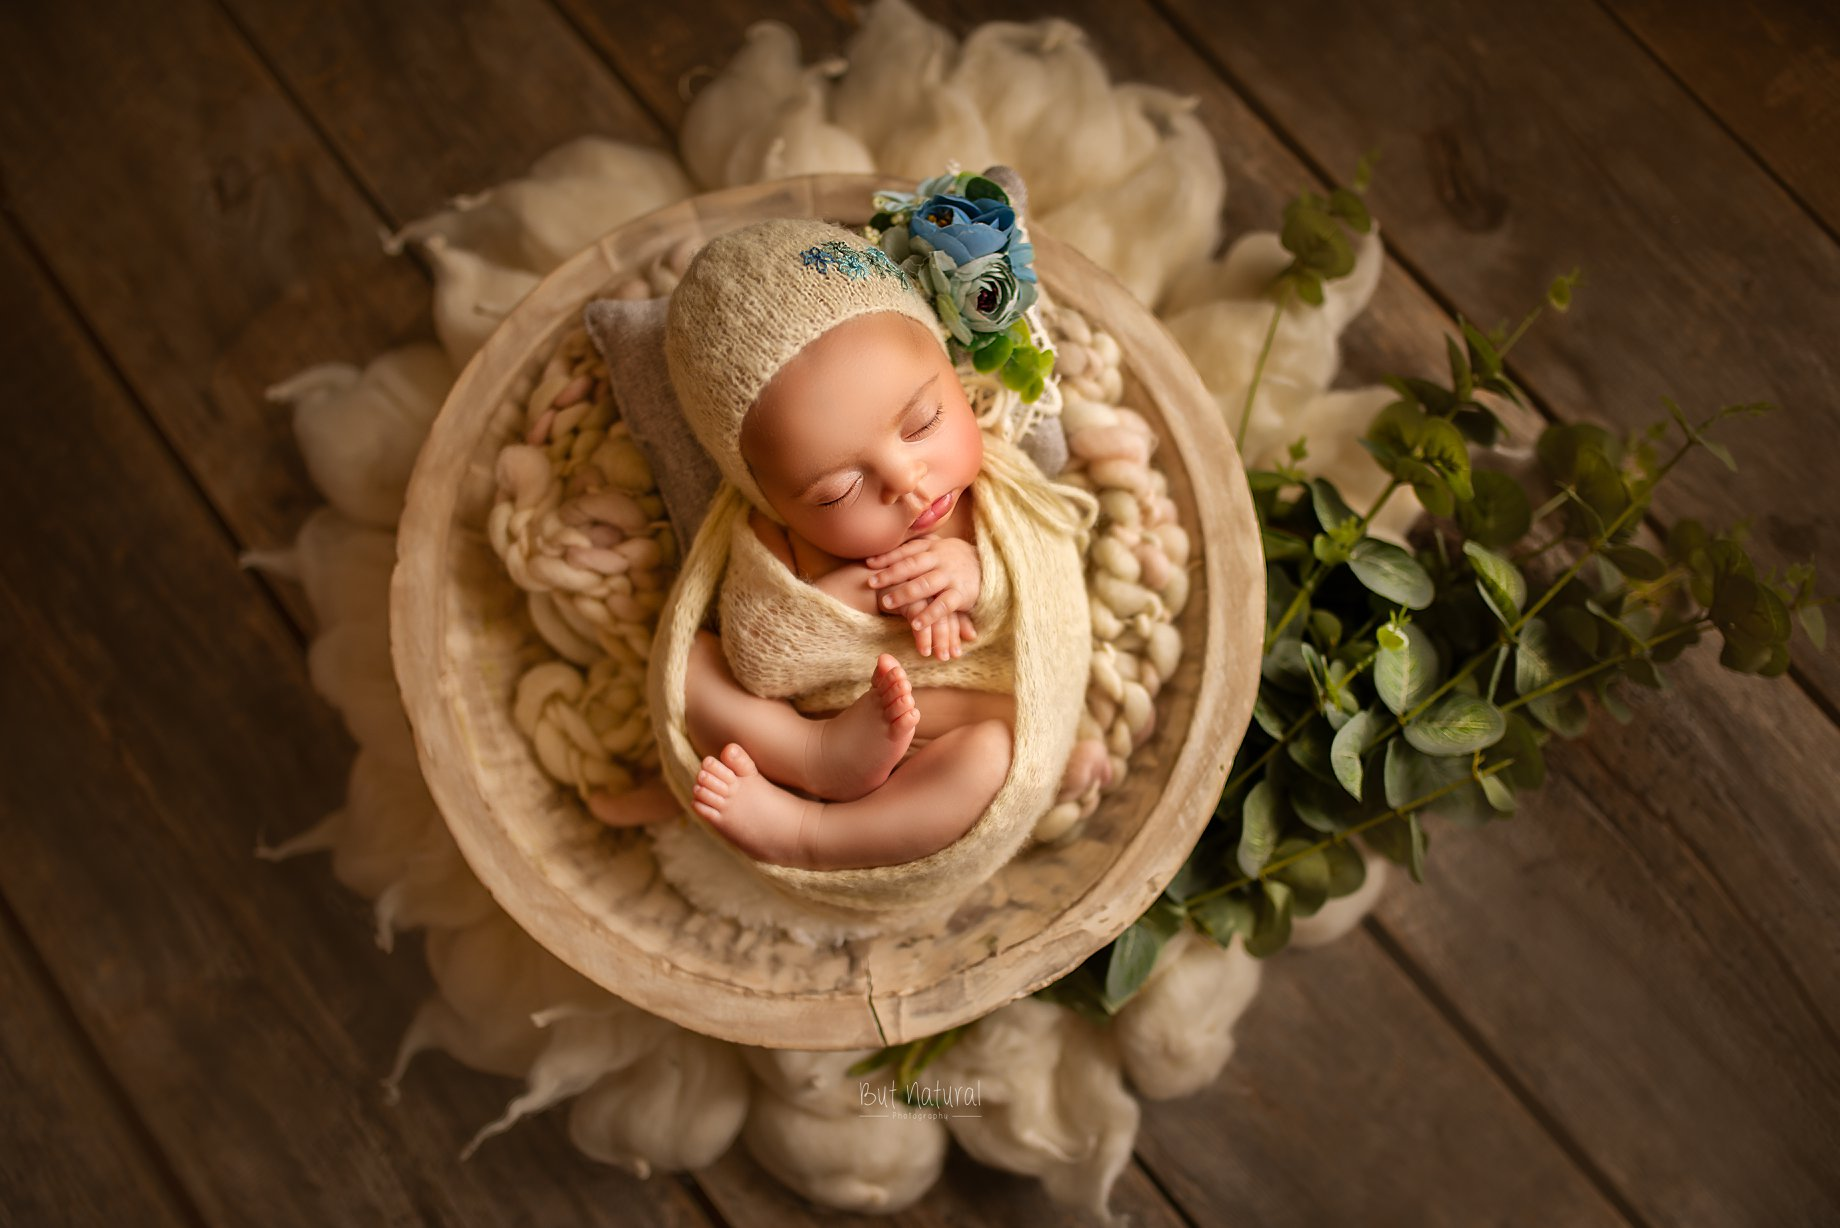 Newborn baby sleeping on a round-shaped prop | But Natural Photography, Sujata Setia